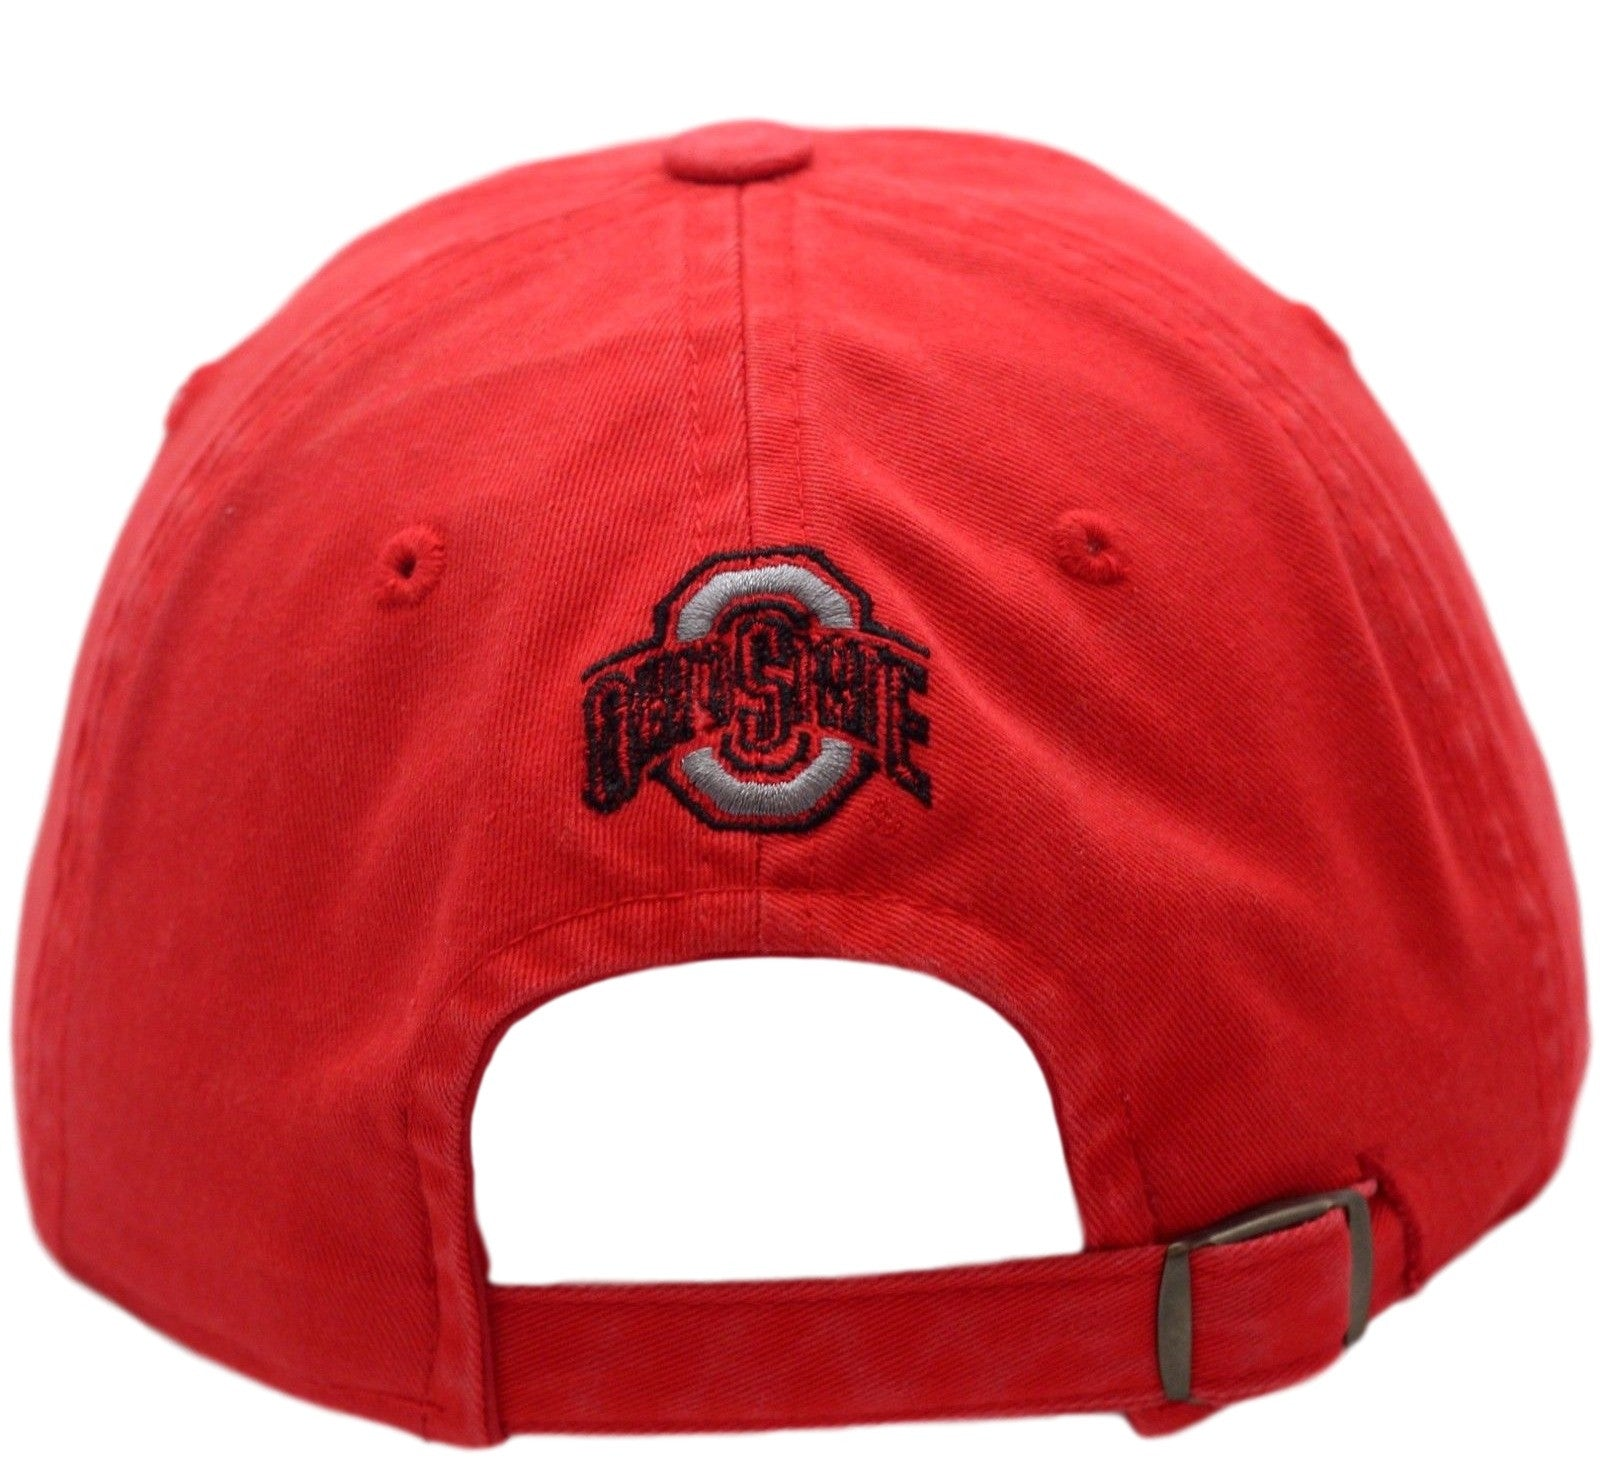 Buckeyes Retro Strapback Hat - And Still